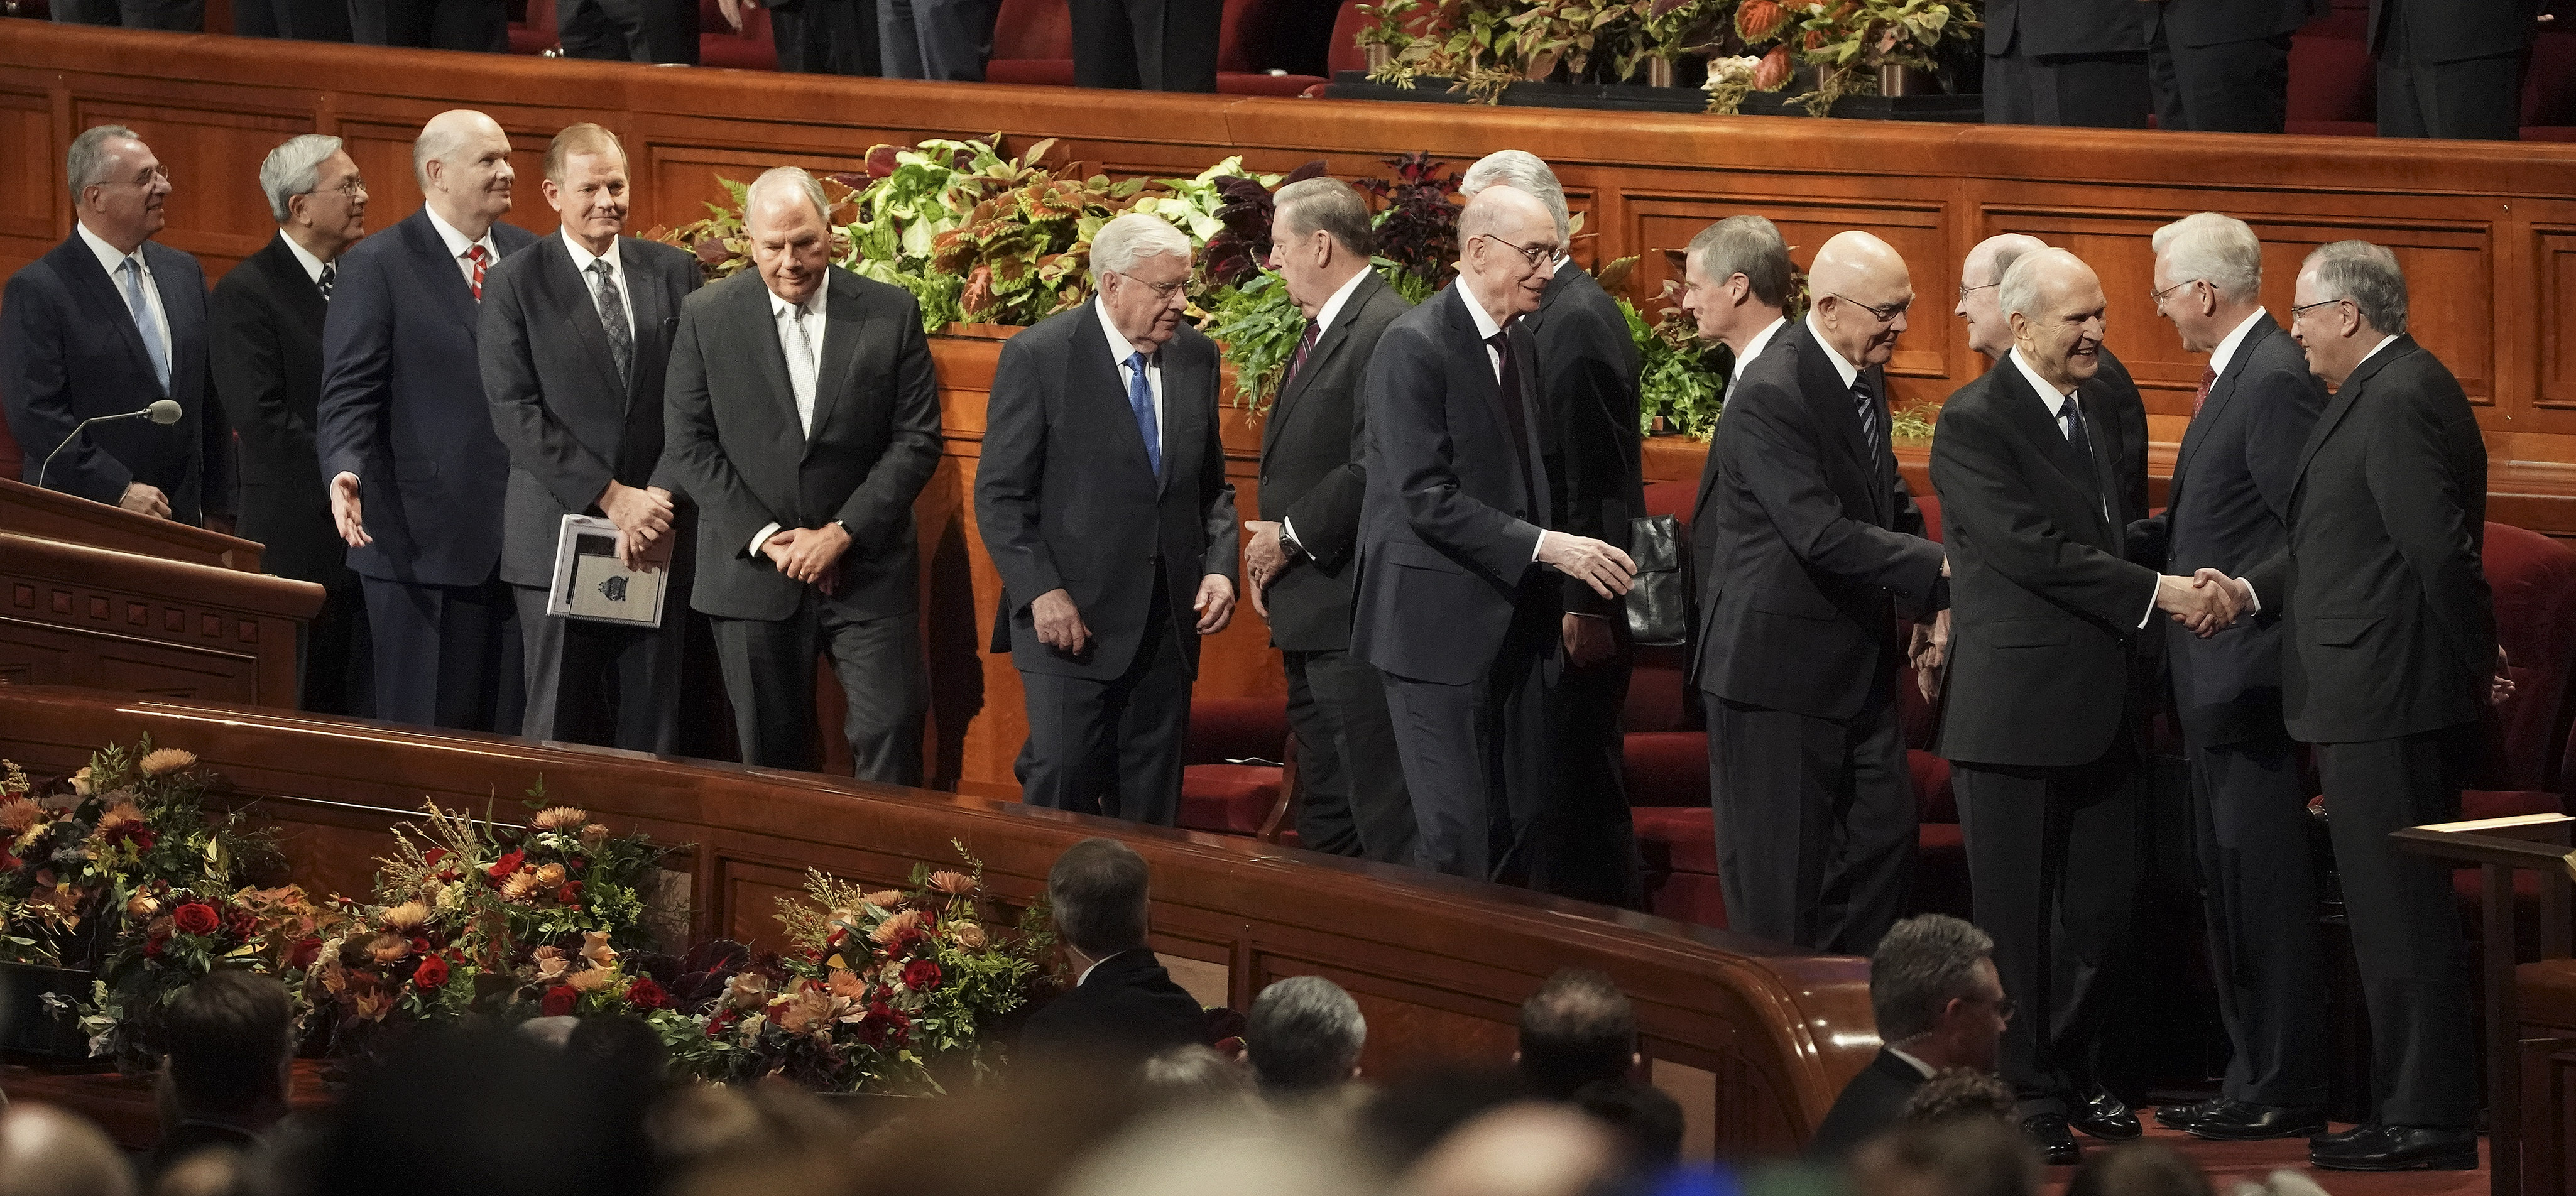 President Russell M. Nelson shackles hands with general authorities after the Sunday morning session of the 189th Semiannual General Conference of The Church of Jesus Christ of Latter-day Saints in Salt Lake City on Sunday, Oct. 6, 2019.